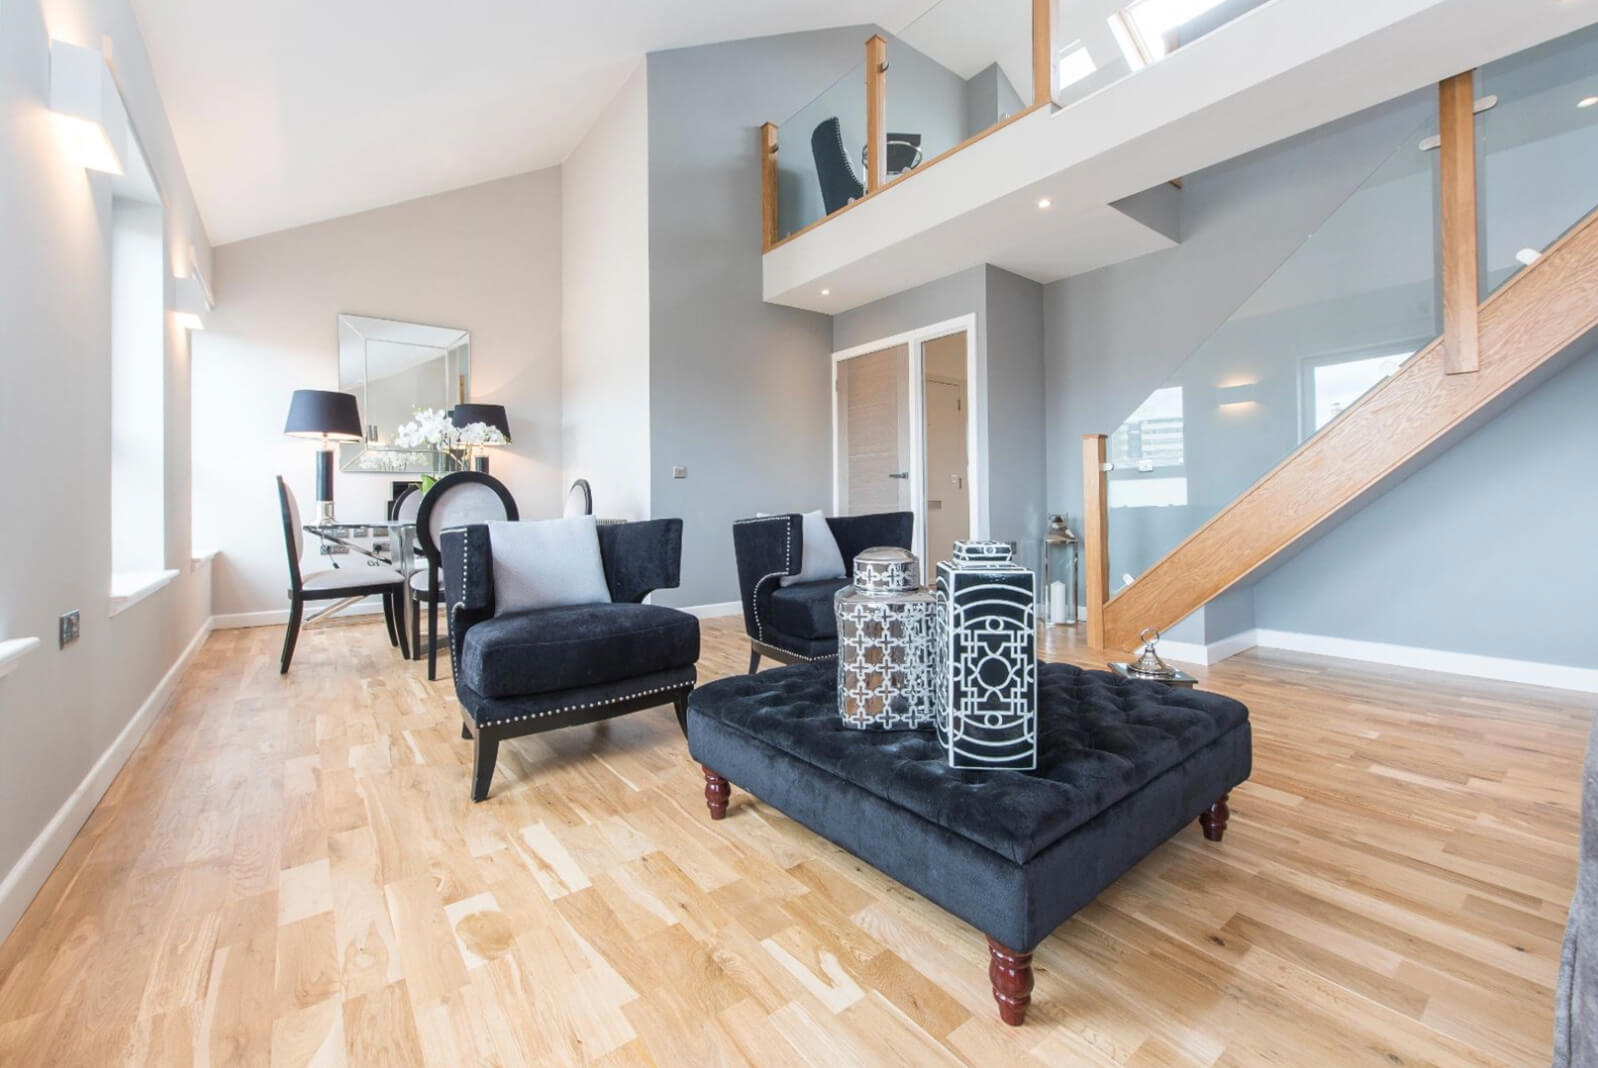 Furnished open plan lounge area with staircase to upper level. Dining area with square glass table and four dining chairs.